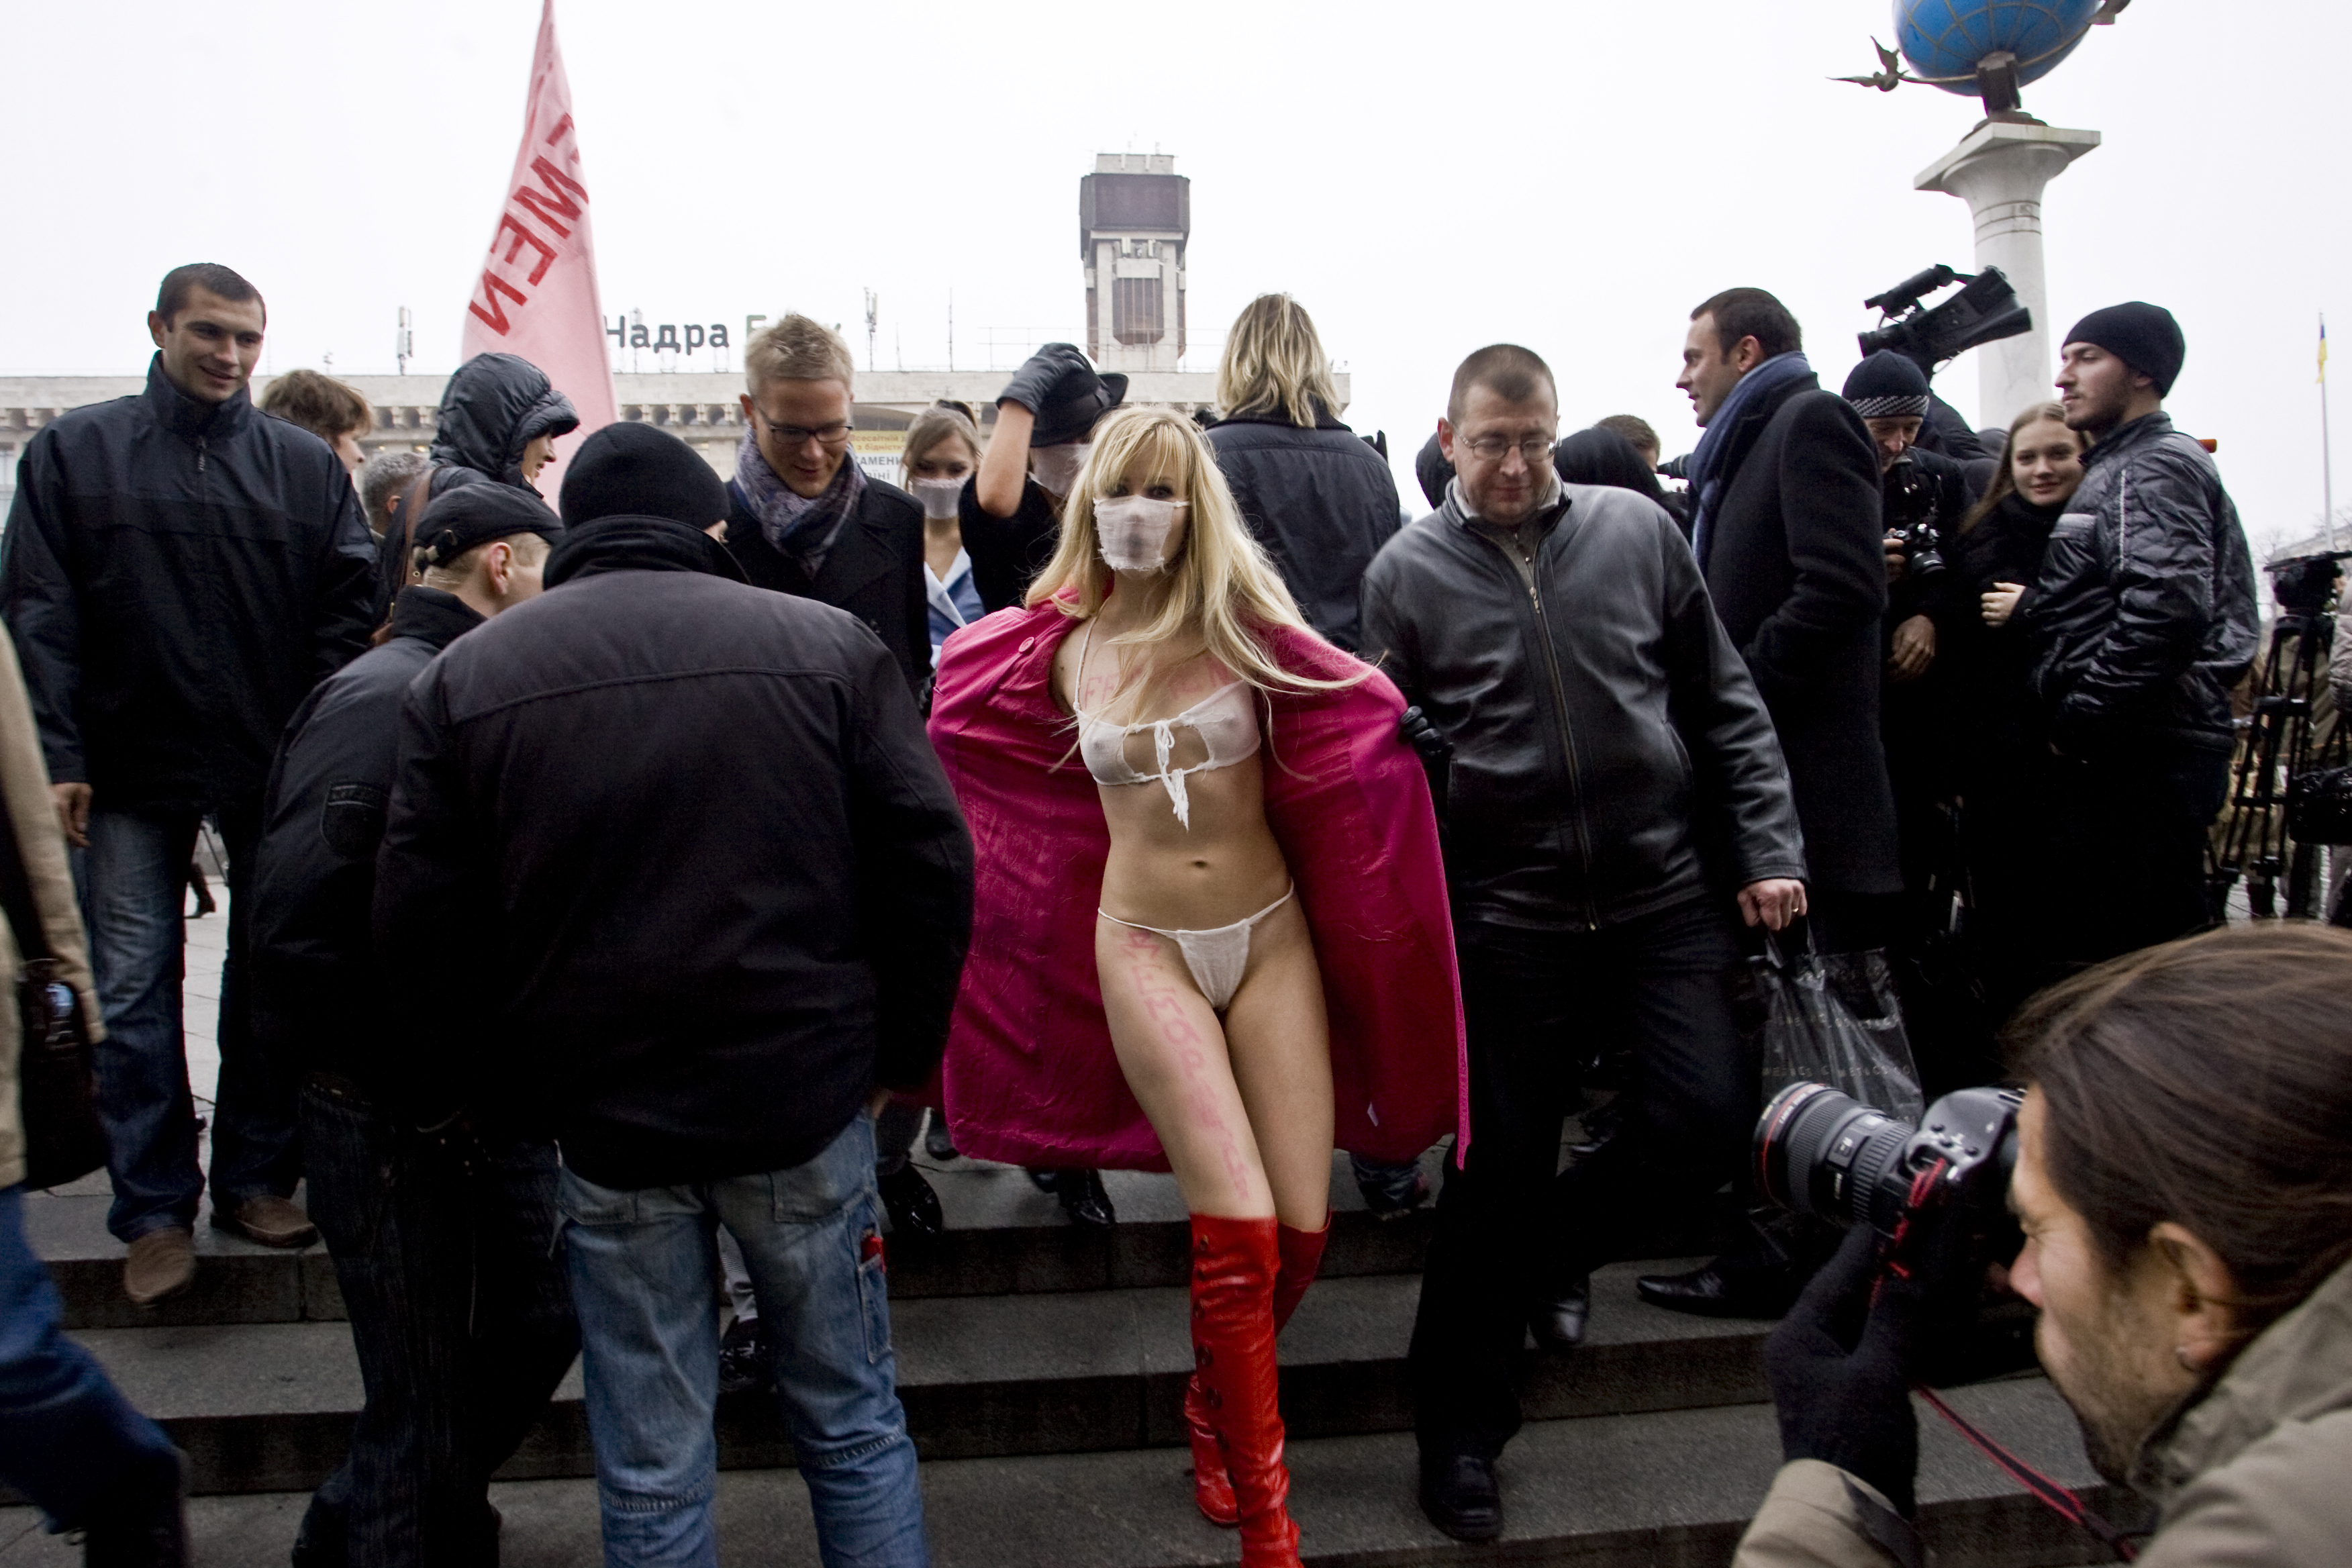 Meet the Women of Femen, AKA the Bare-Breasted Protestors